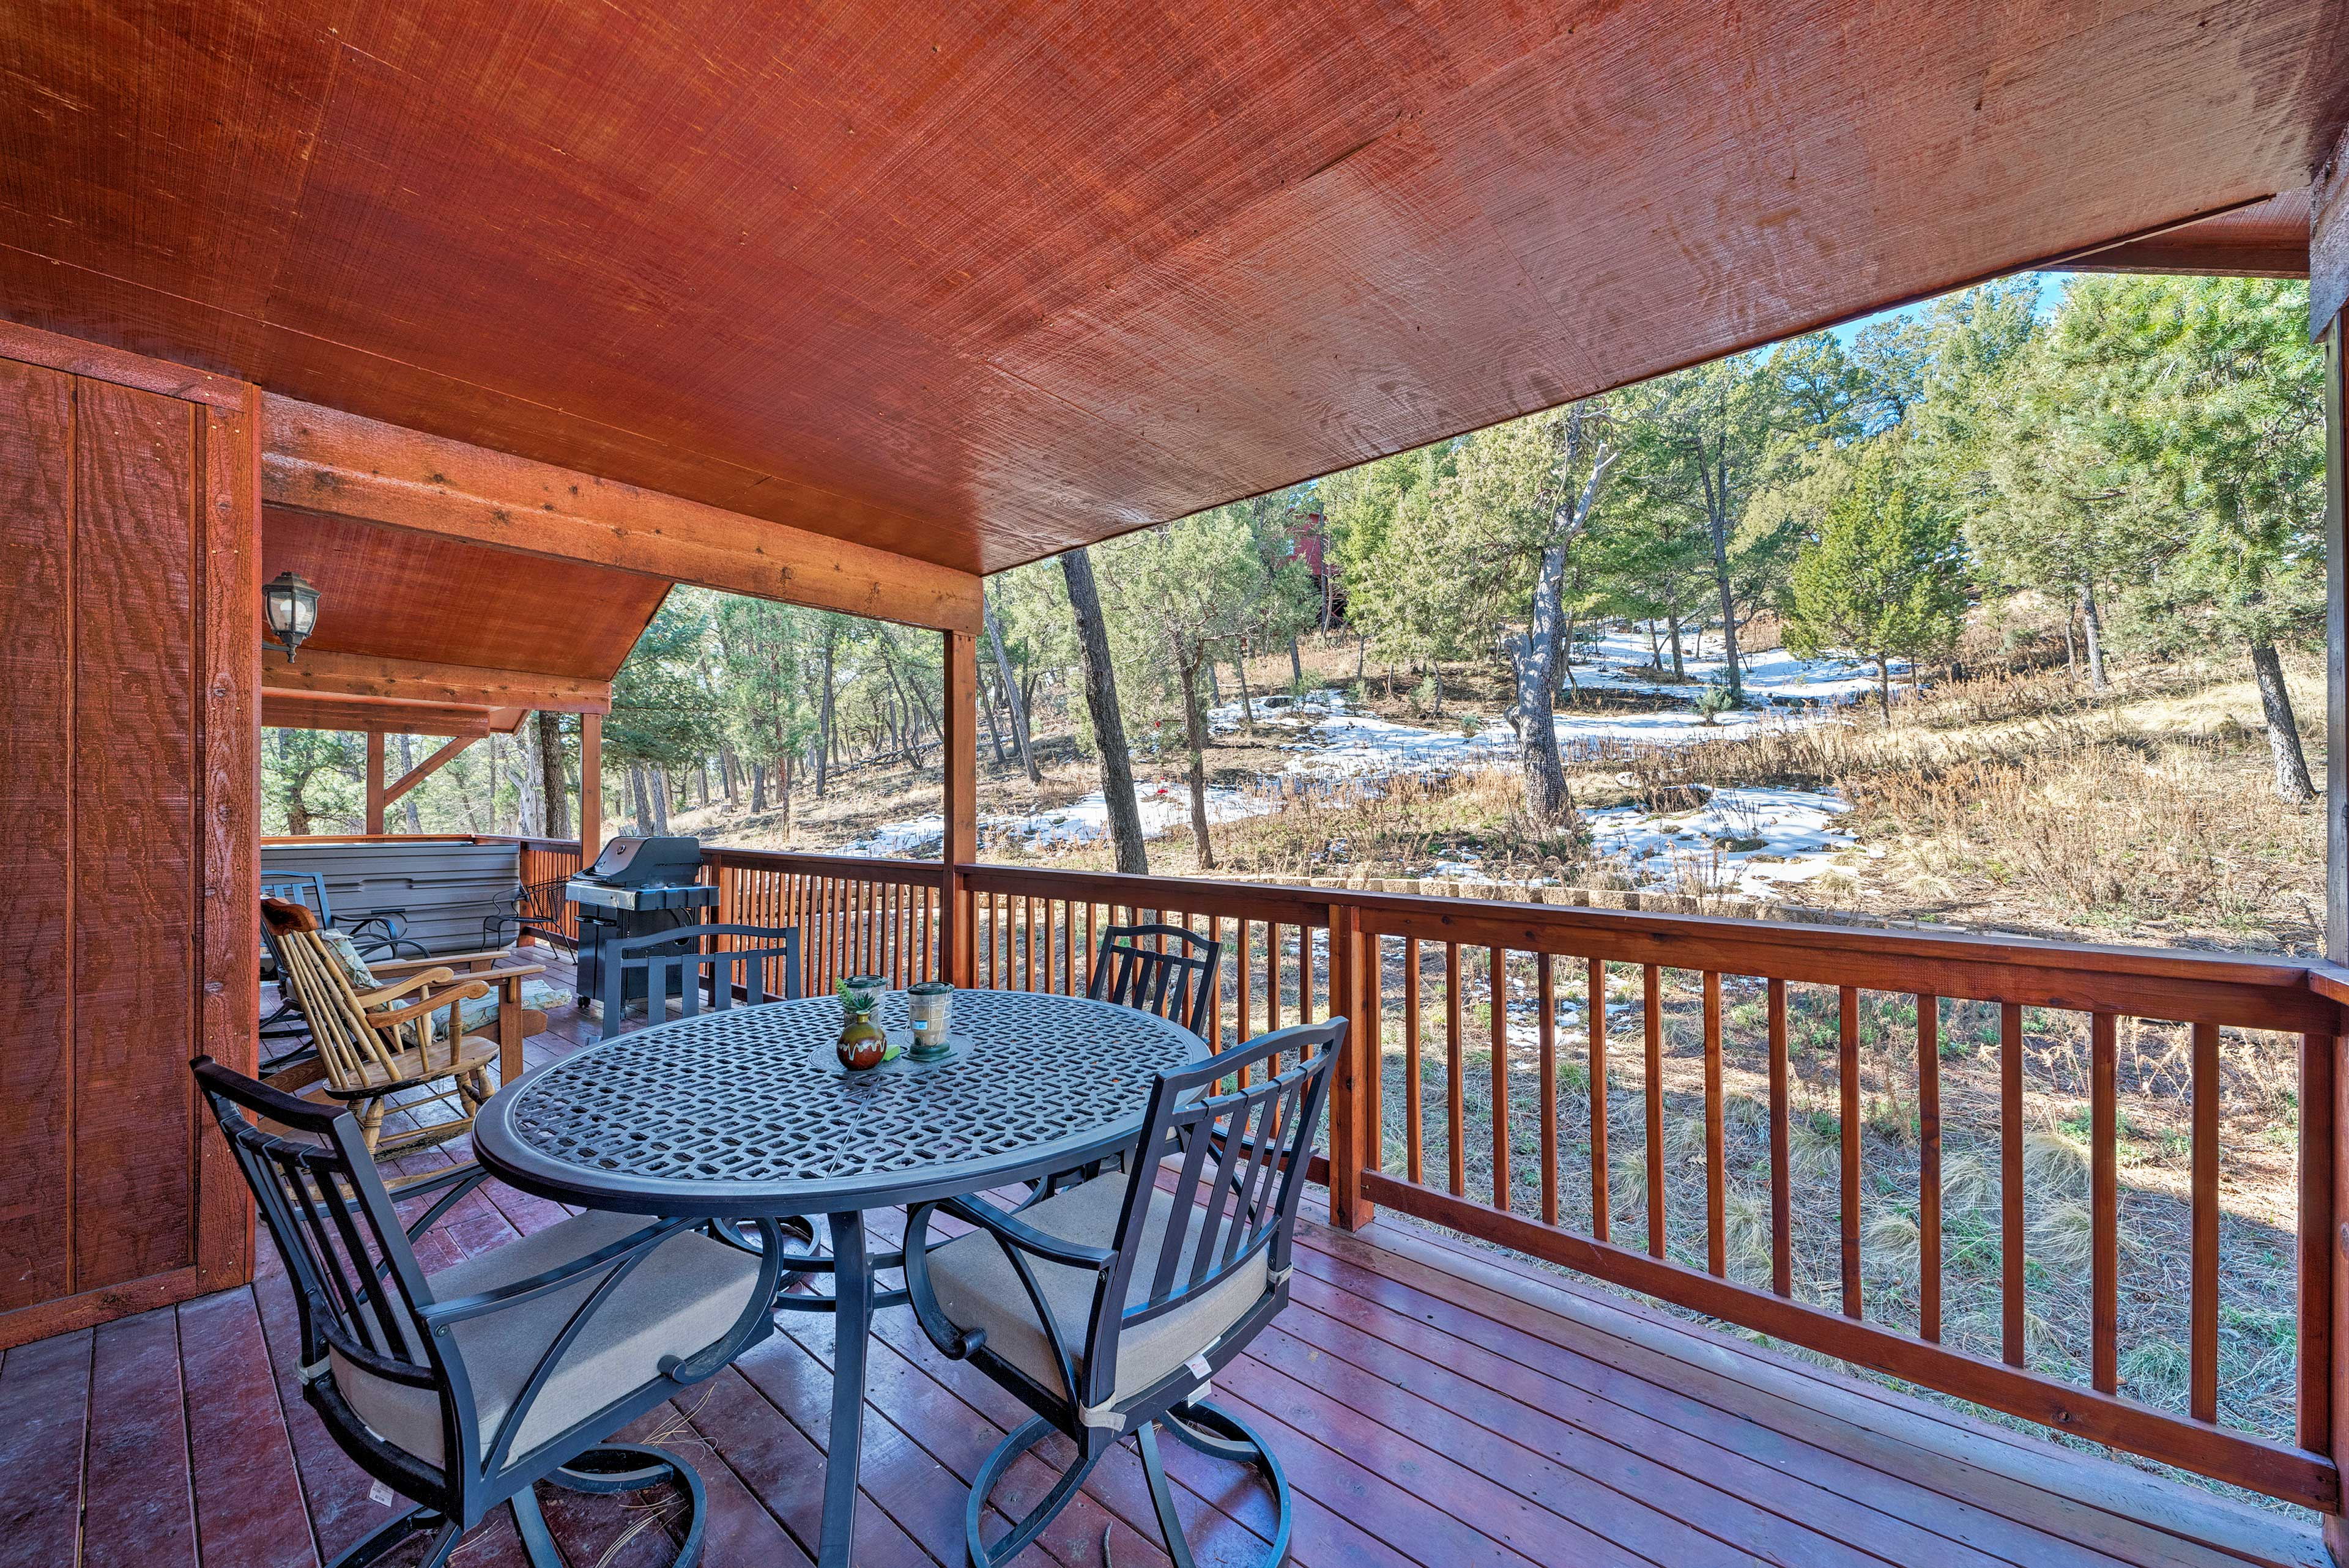 Covered Deck | Outdoor Dining Area